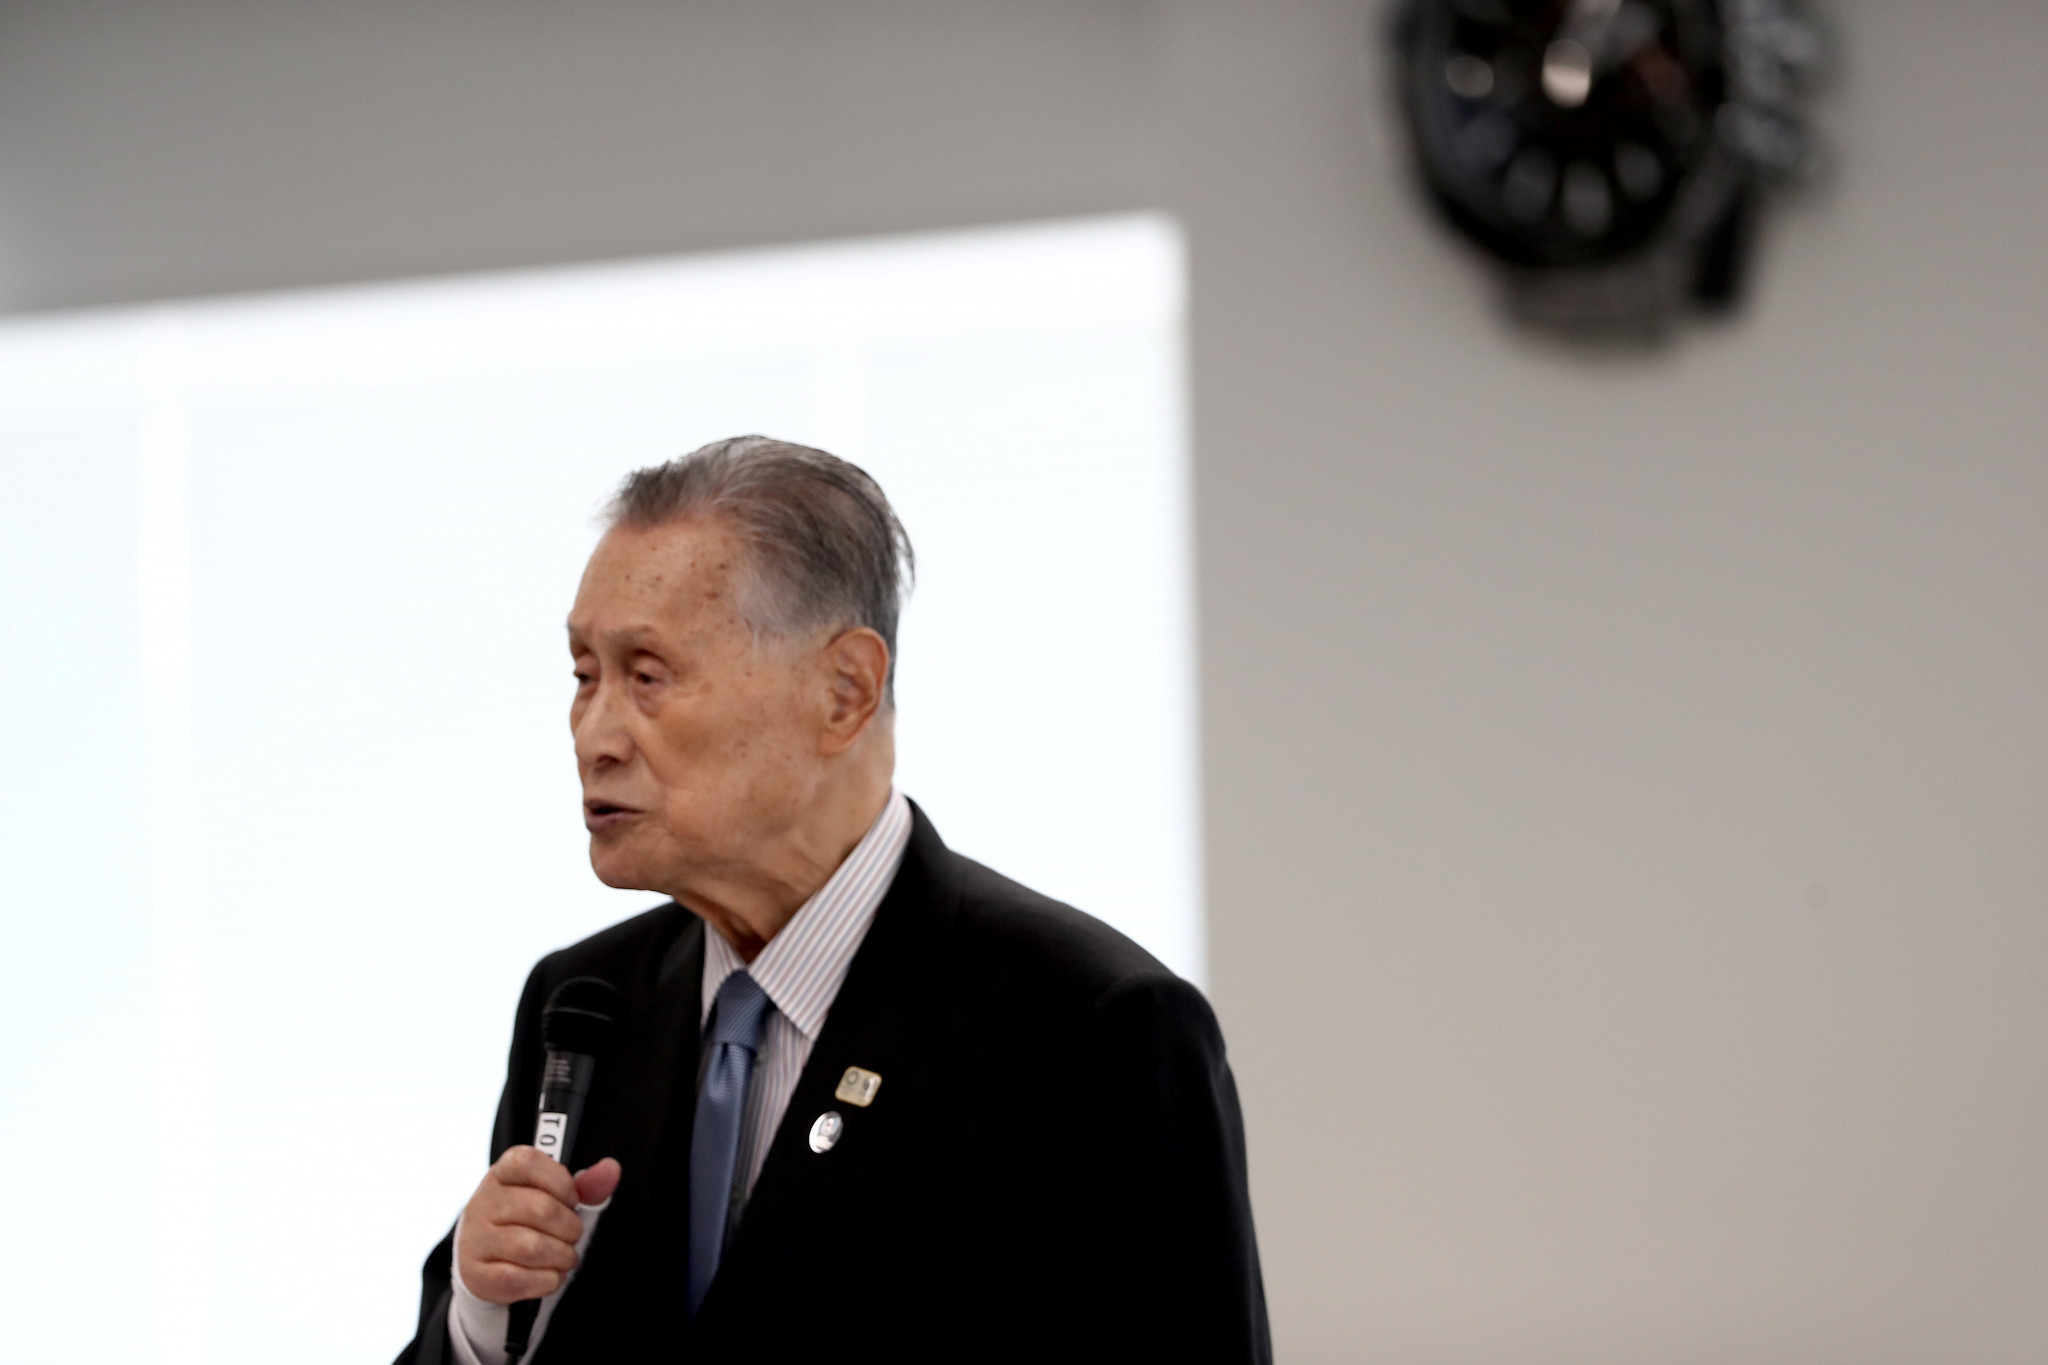 Tokyo 2020 President Mori eyes summer dates for rescheduled Olympics